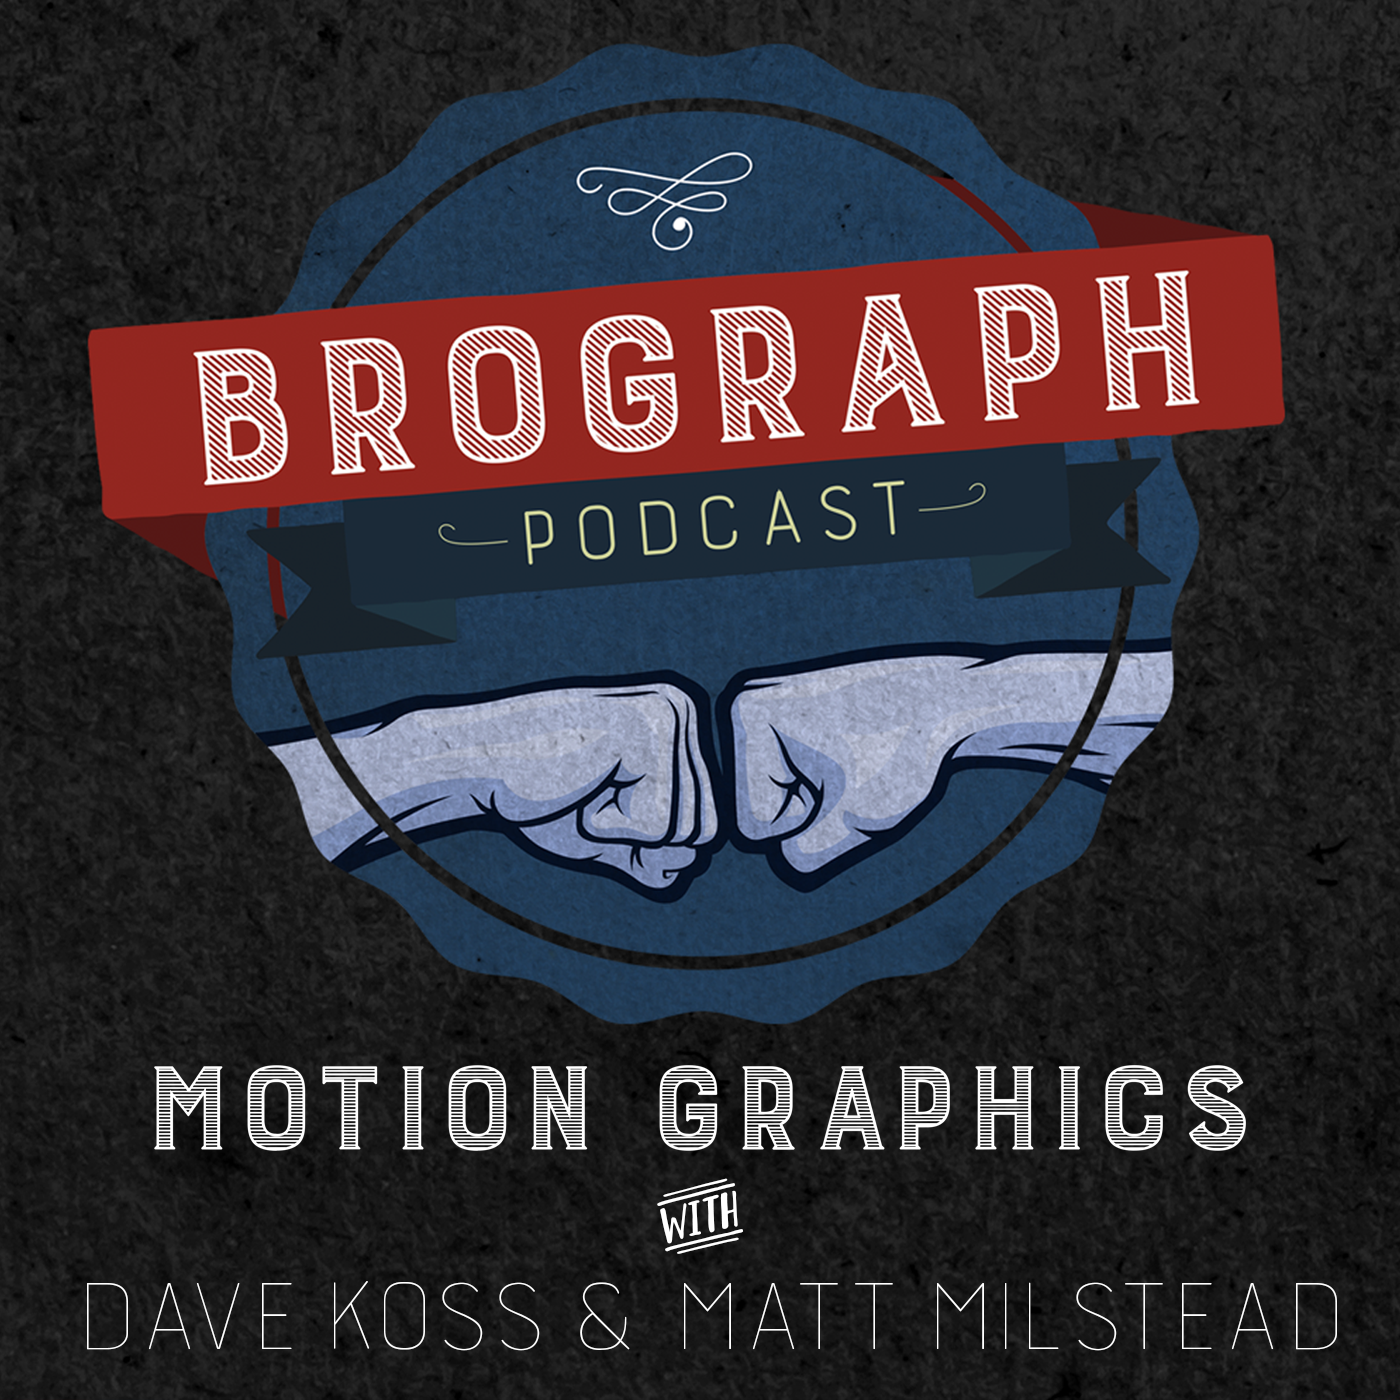 Brograph Motion Graphics Podcast - BROGRAPH